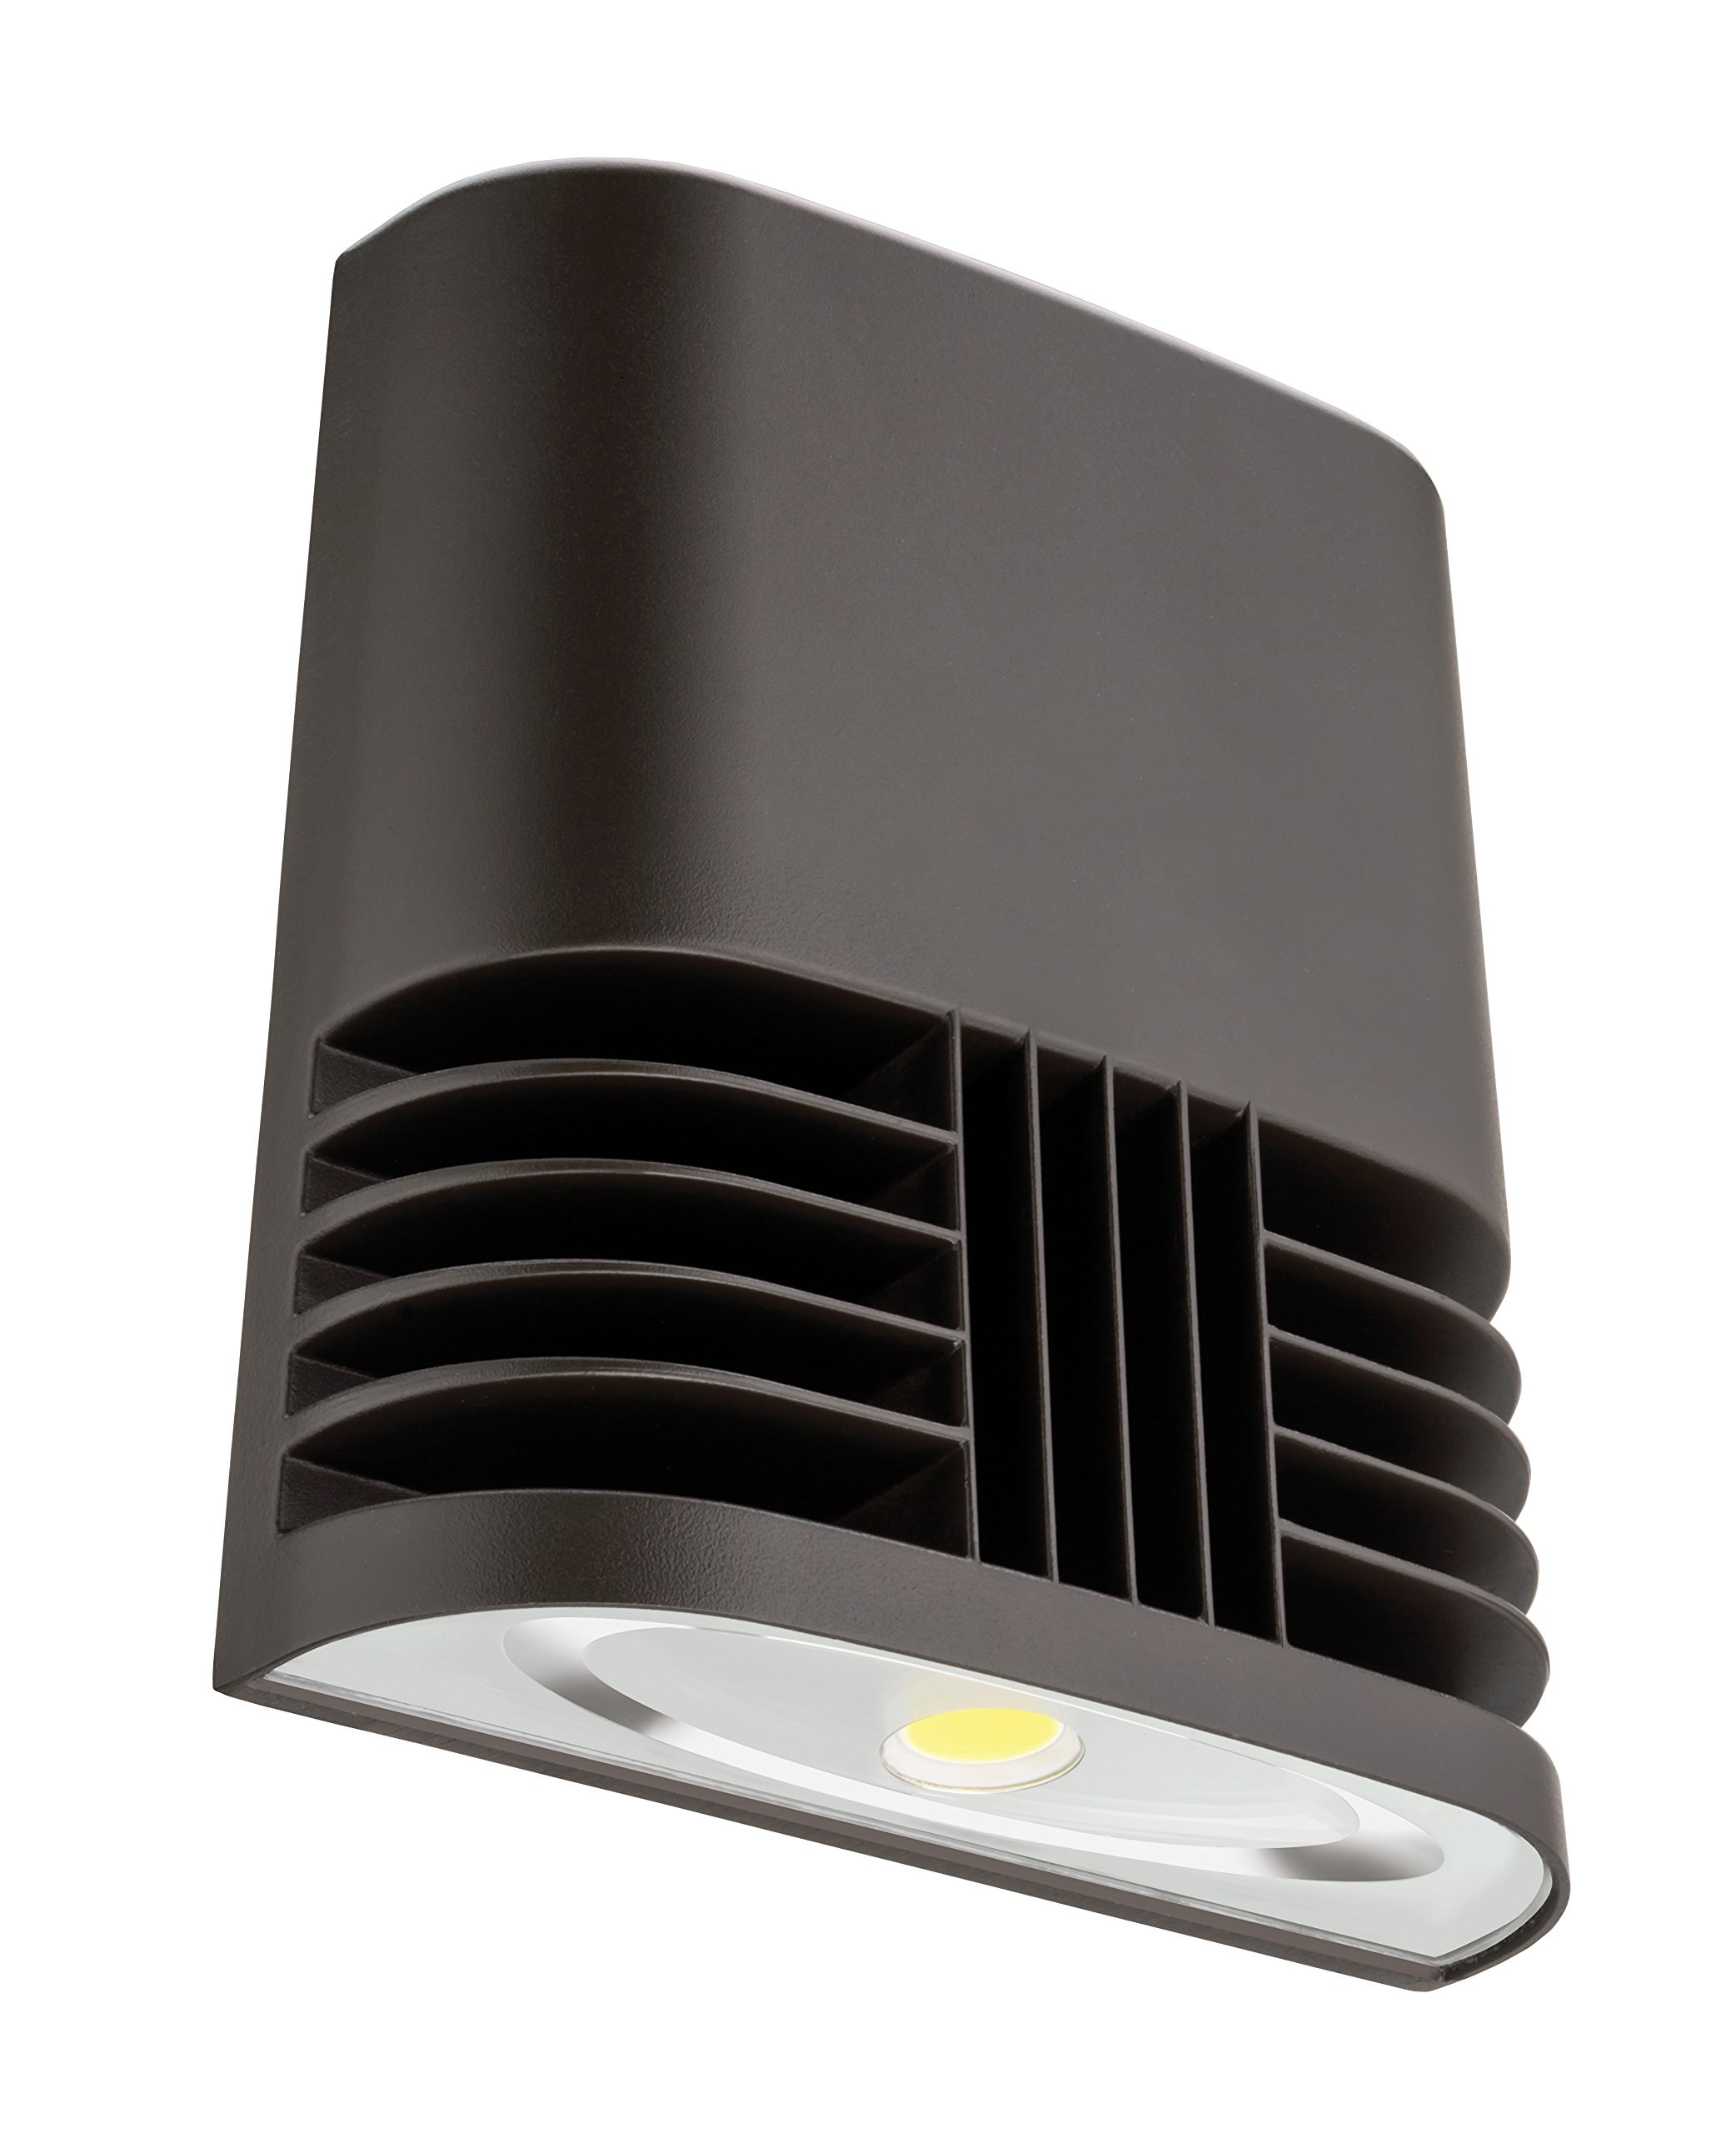 Lithonia Lighting OLWX1 LED 20W 40K M4 Contractor Select LED Wall Pack Dark Bronze by Lithonia Lighting